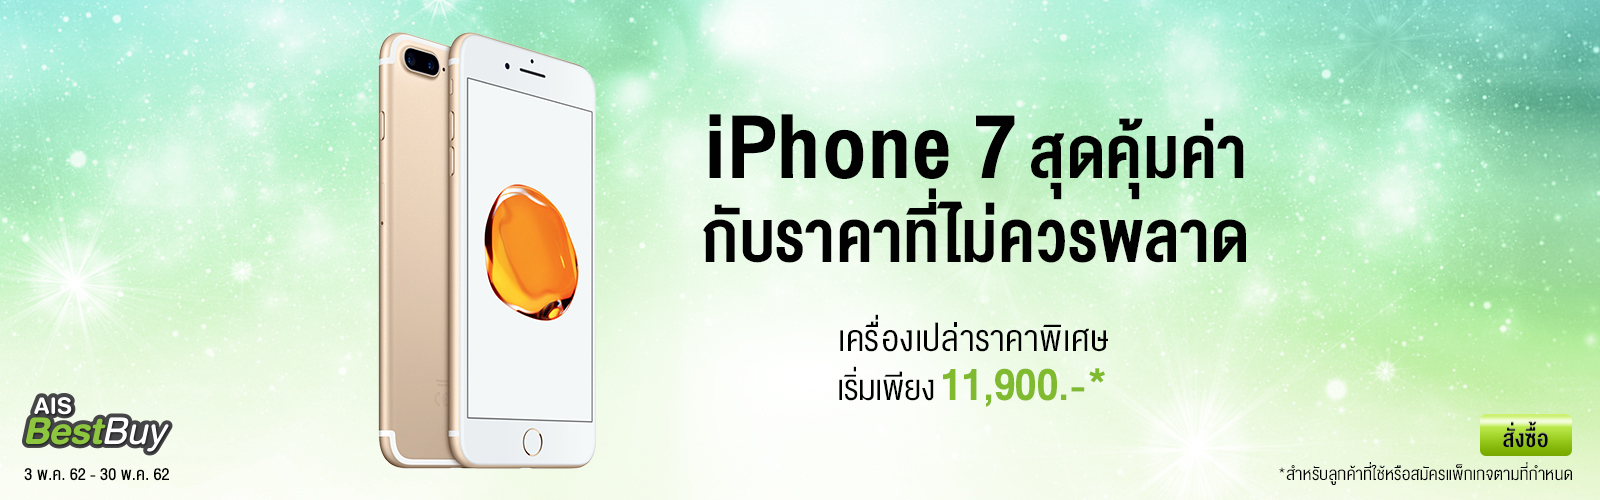 iPhone7_TH